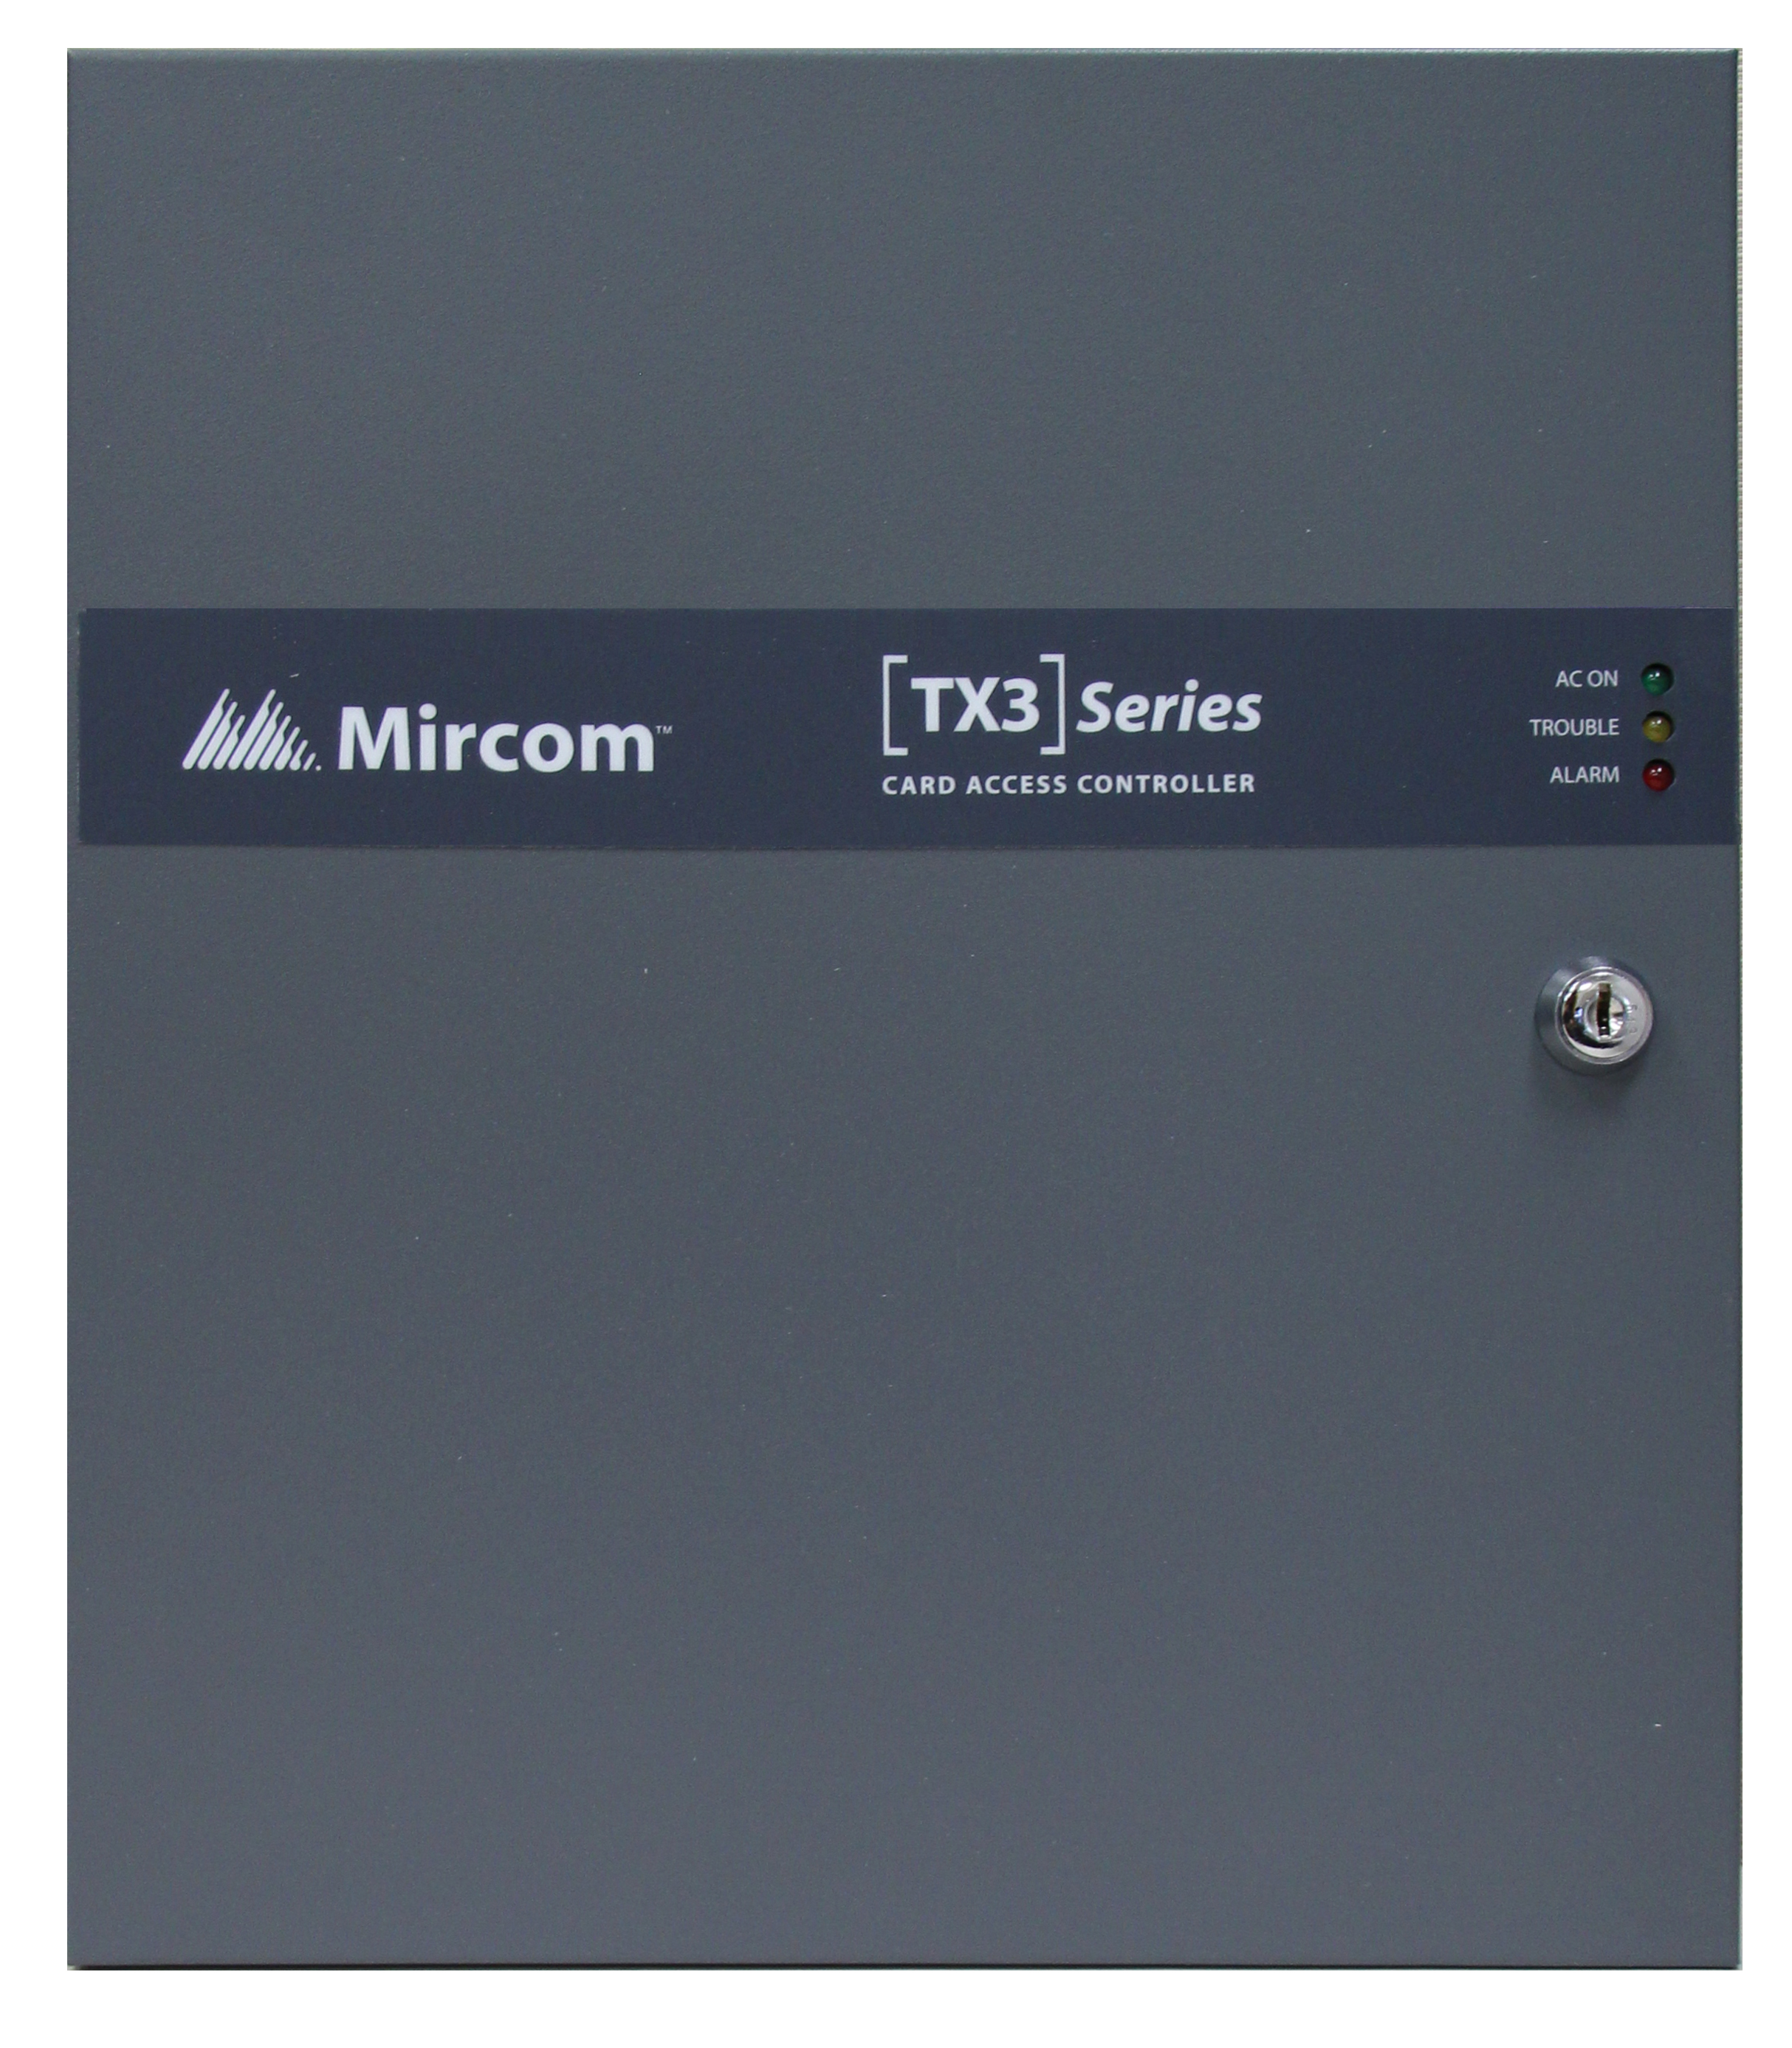 TX3-CX-6-A MIRCOM SIX DOOR CONTROLLER PANEL ************************* SPECIAL ORDER ITEM NO RETURNS OR SUBJECT TO RESTOCK FEE *************************